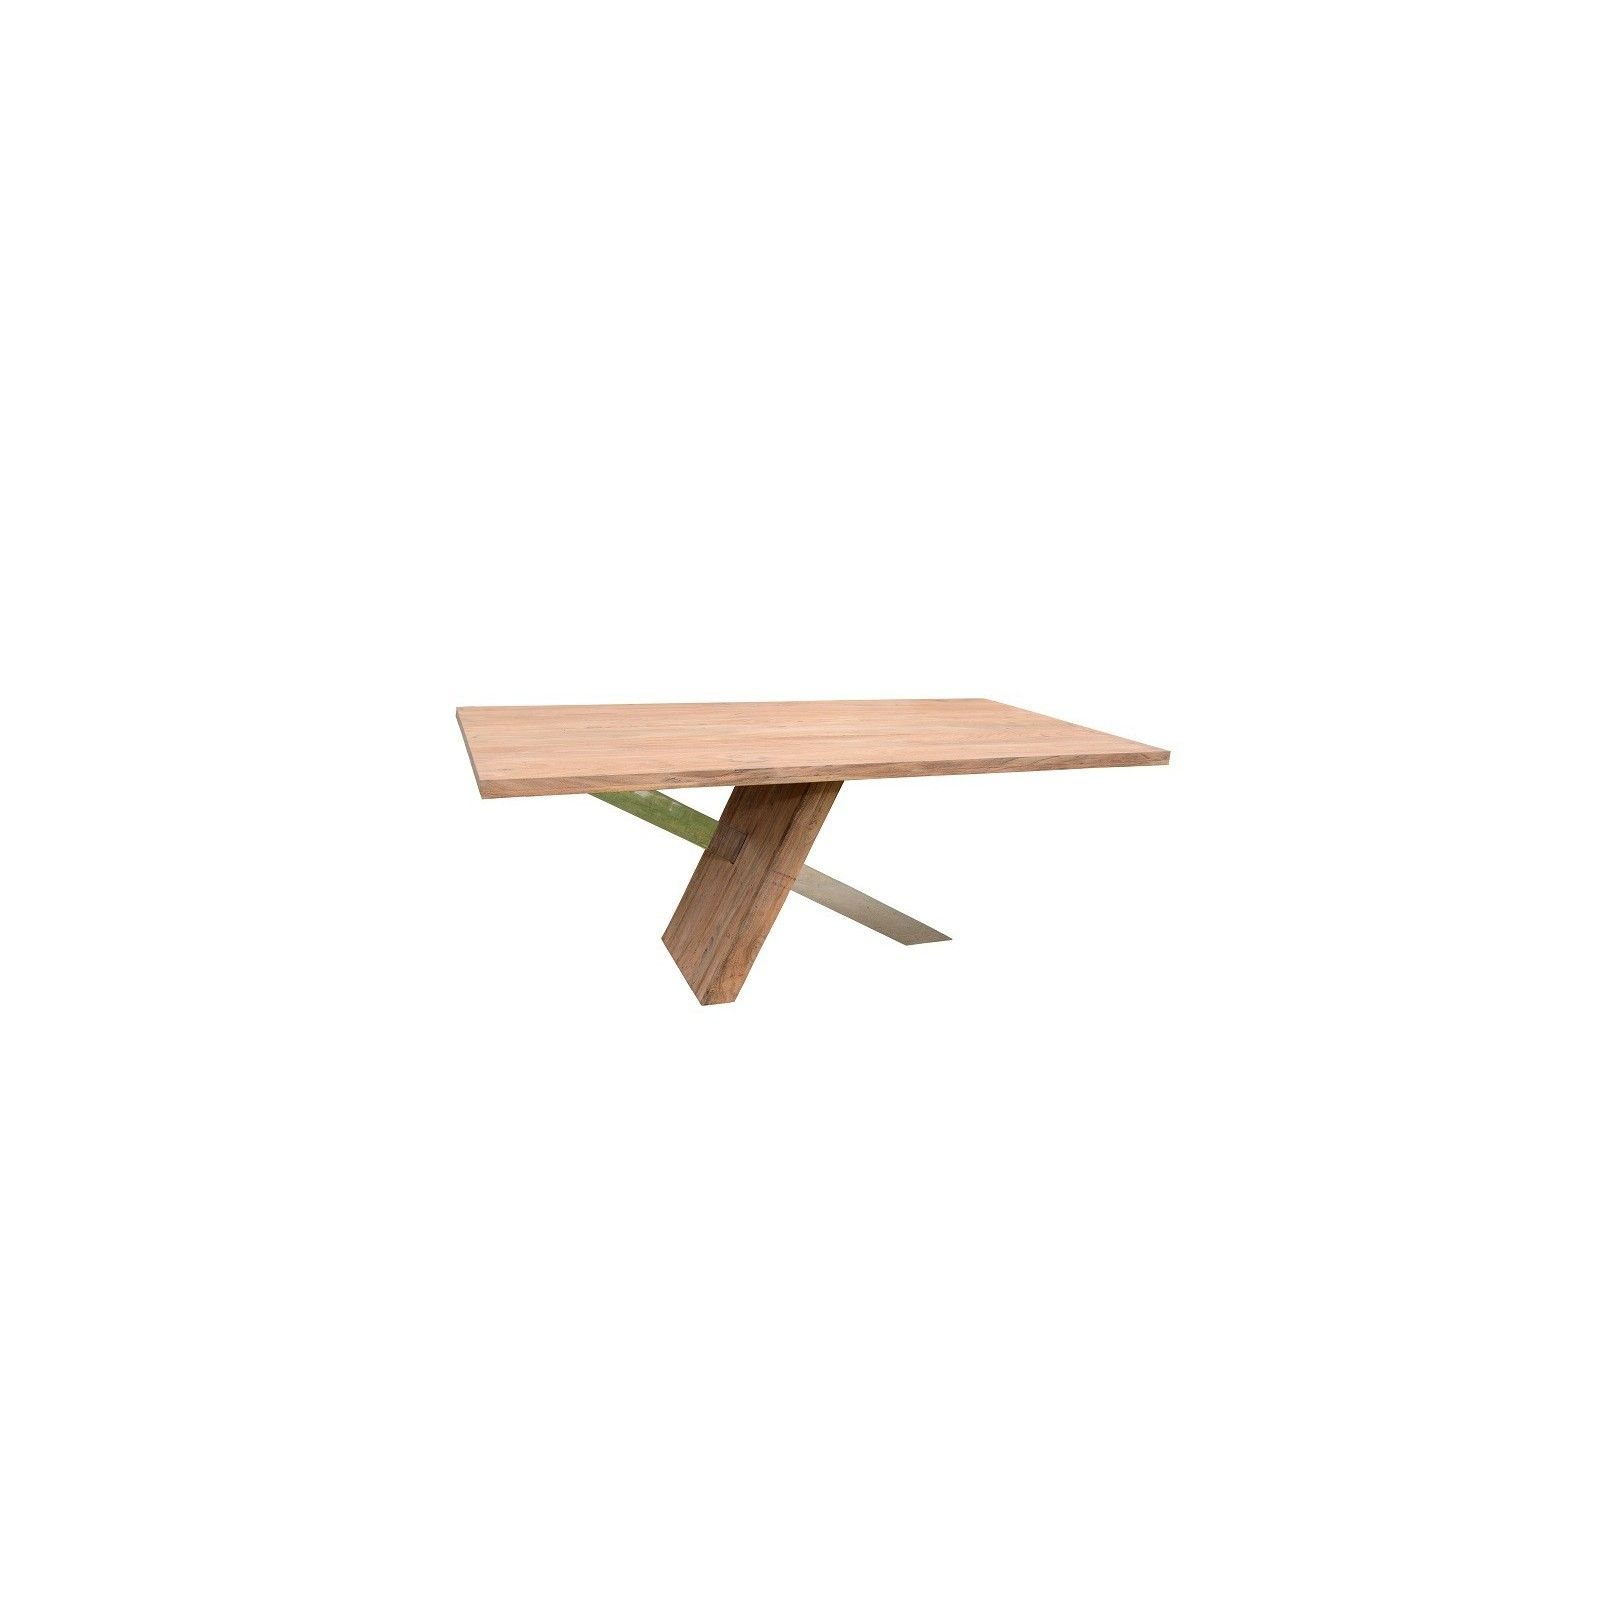 STAINLESS III TABLE DE REPAS PURE 190 x 100 Bois Acacia Stainless . - 366